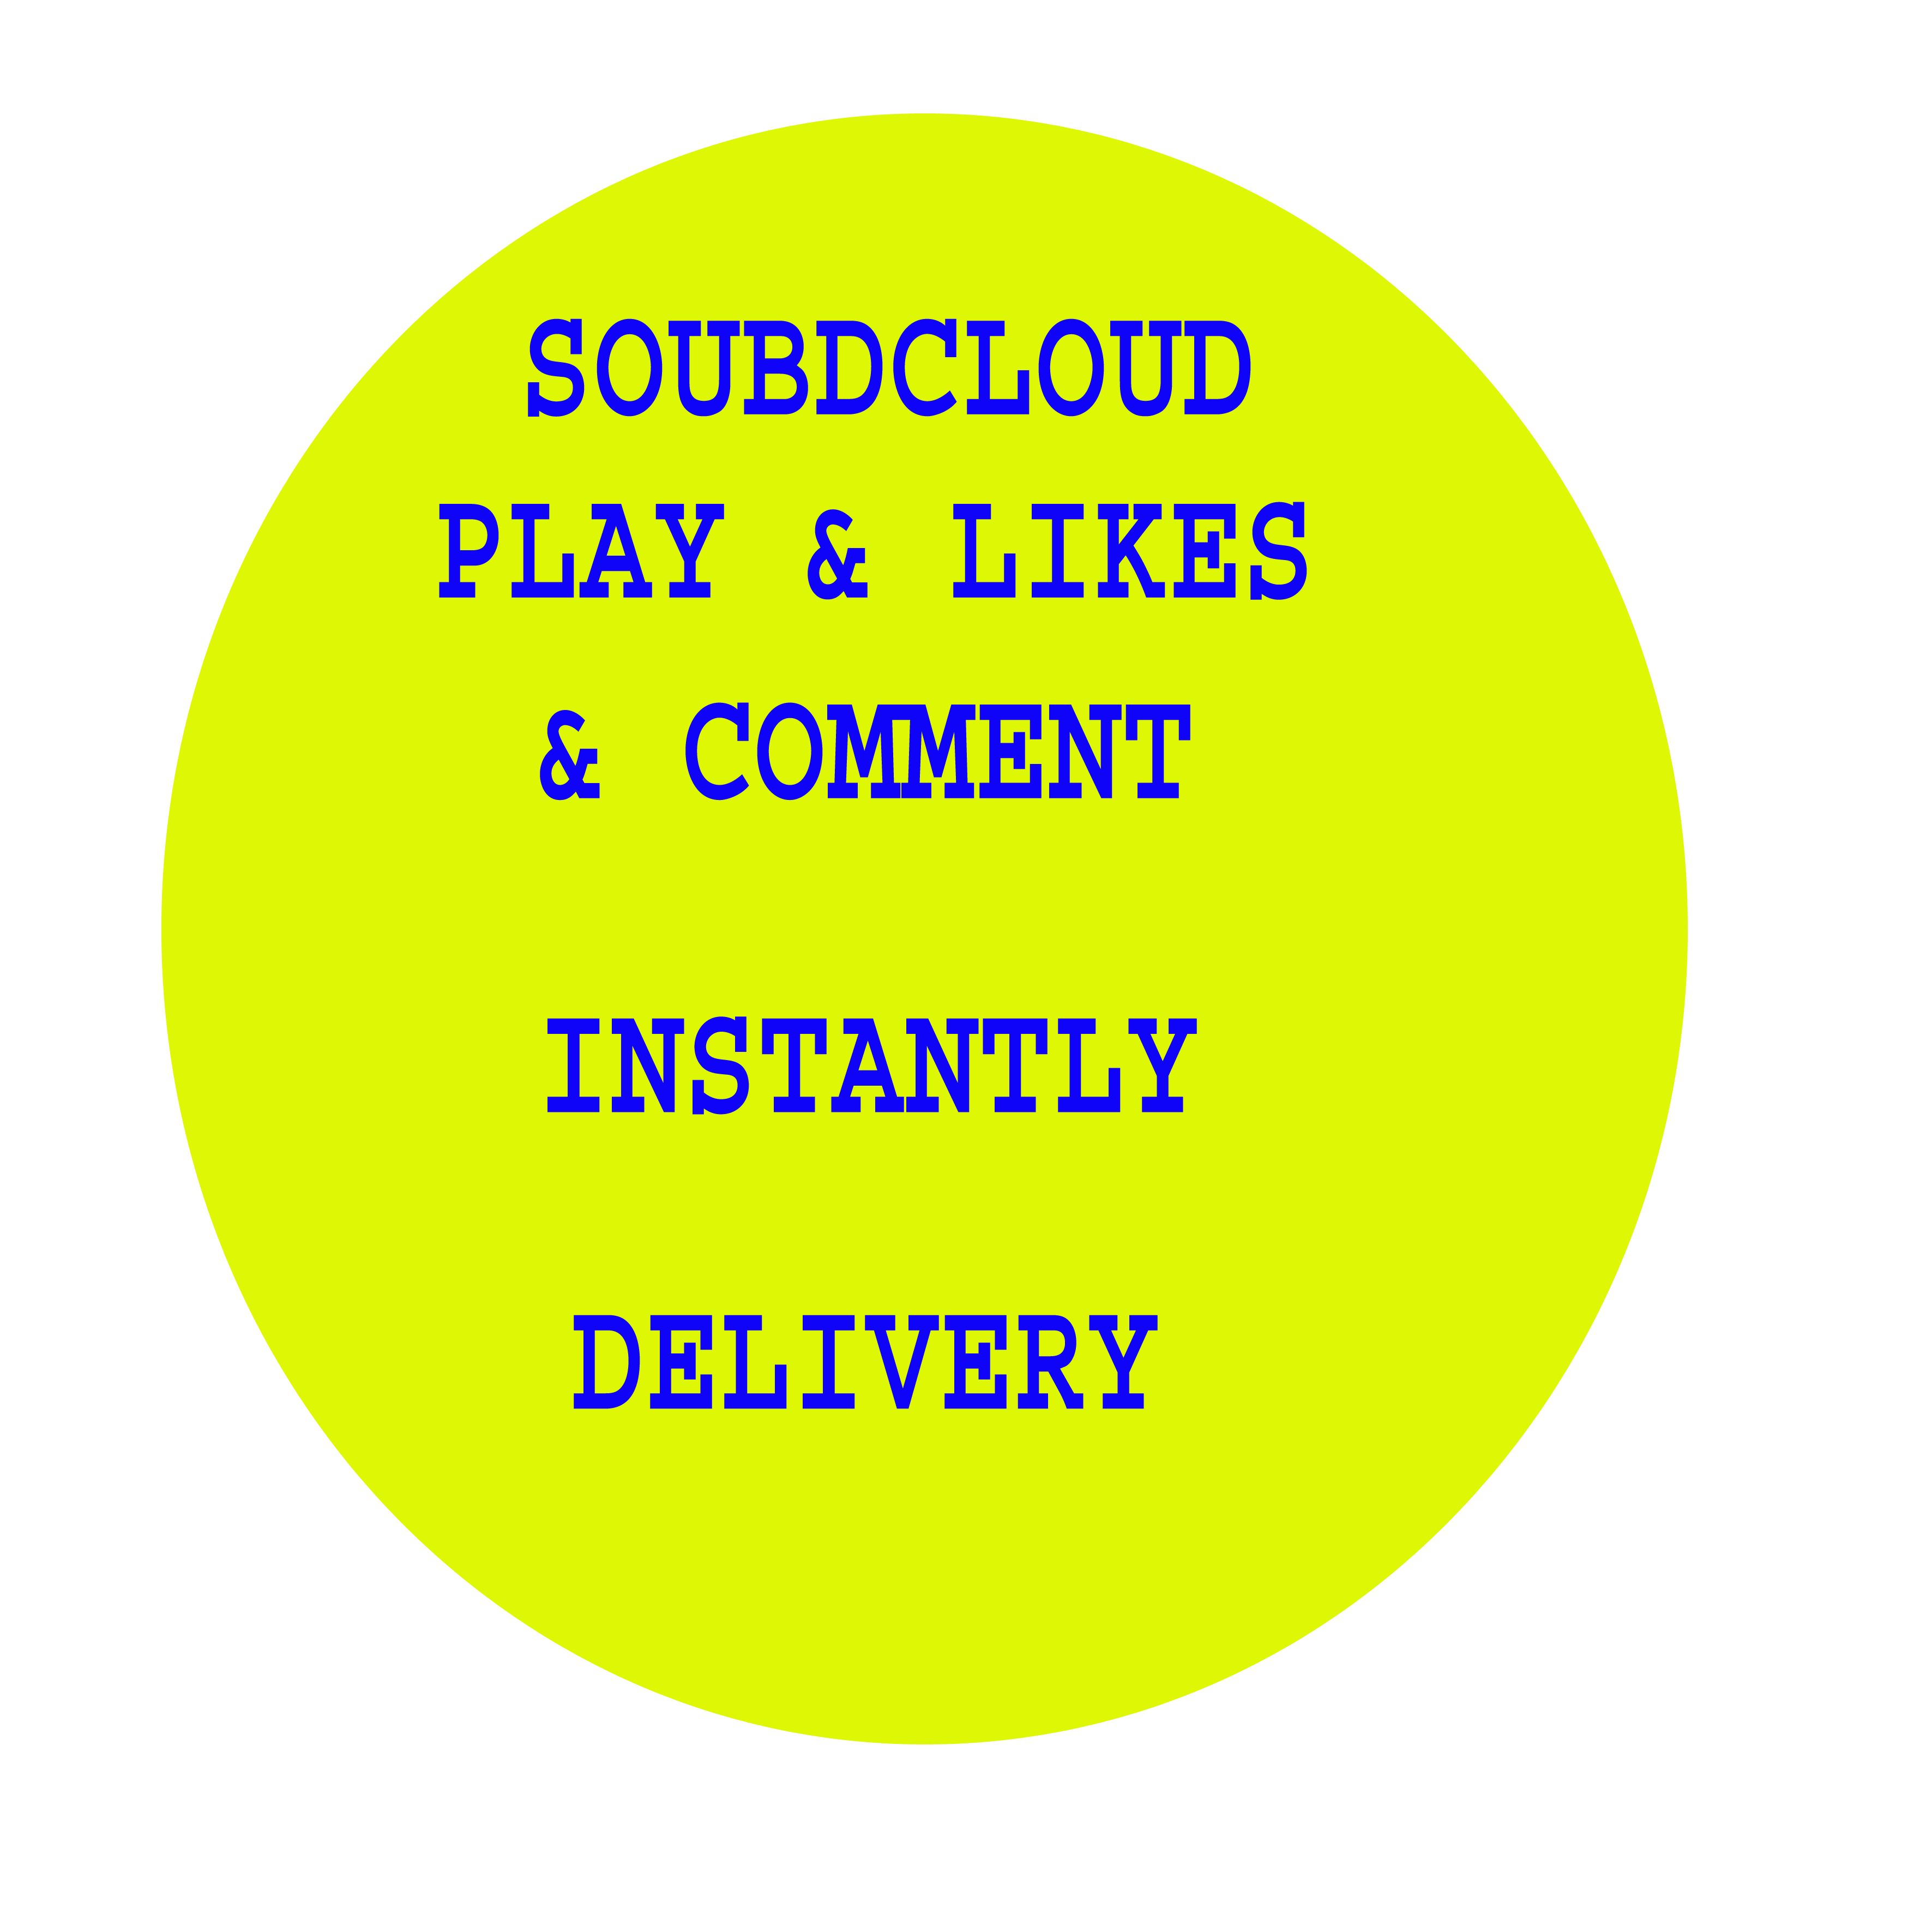 Social media custom service instantly 40k views or 7000 likes delivery